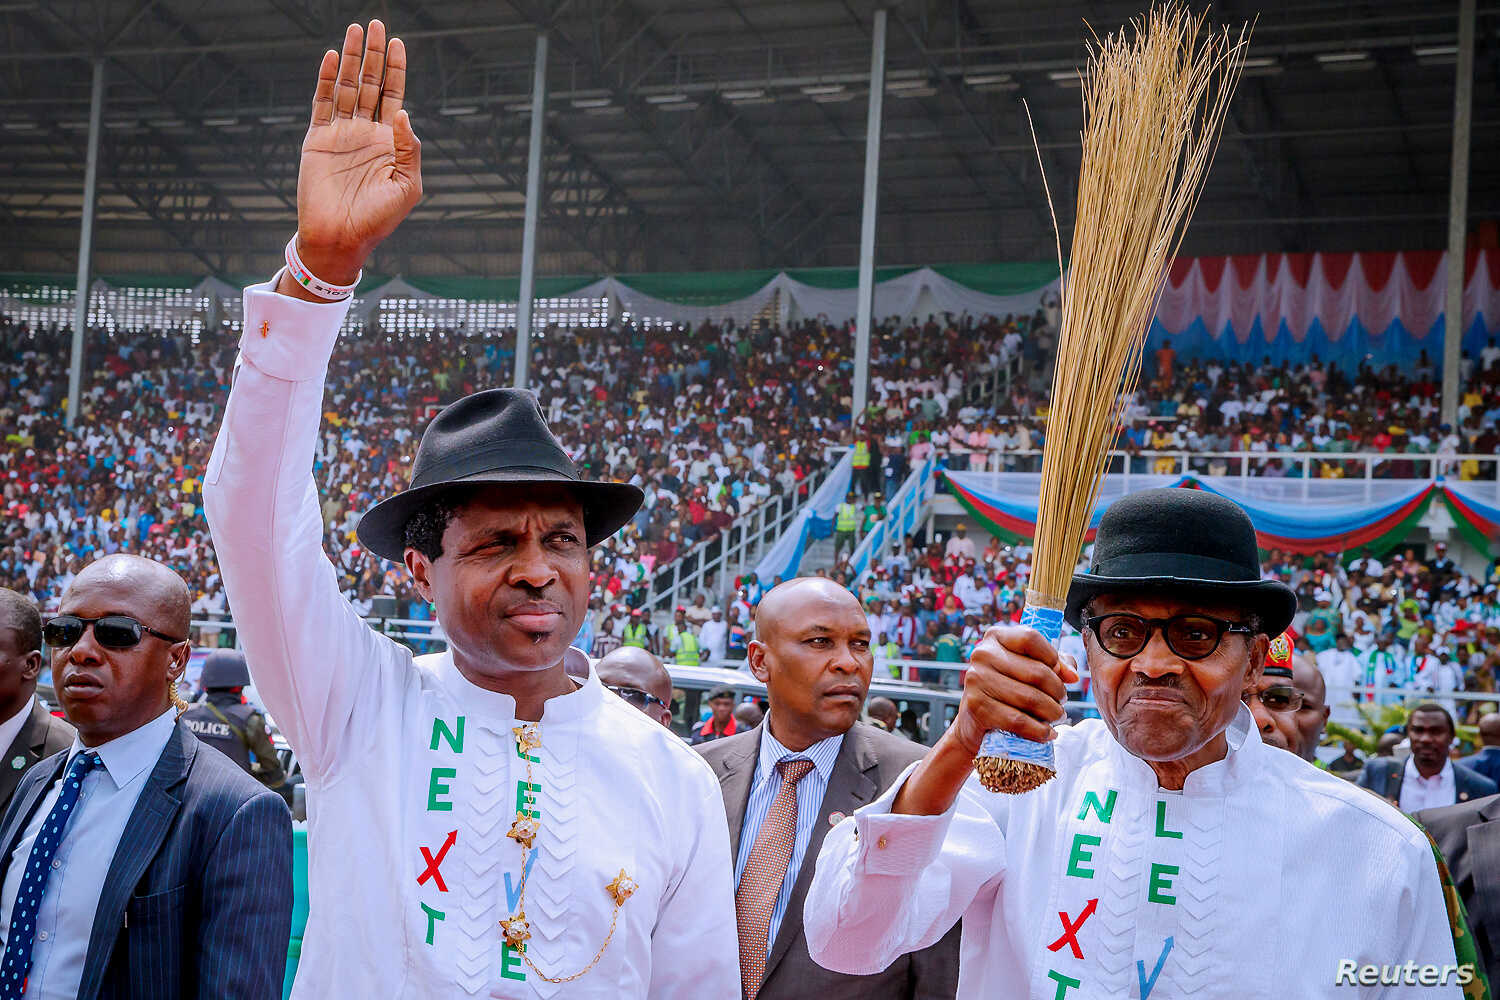 Nigeria's President Muhammadu Buhari greets his supporters during a campaign rally ahead of the country's presidential election in Rivers State, Nigeria, Feb. 12, 2019.